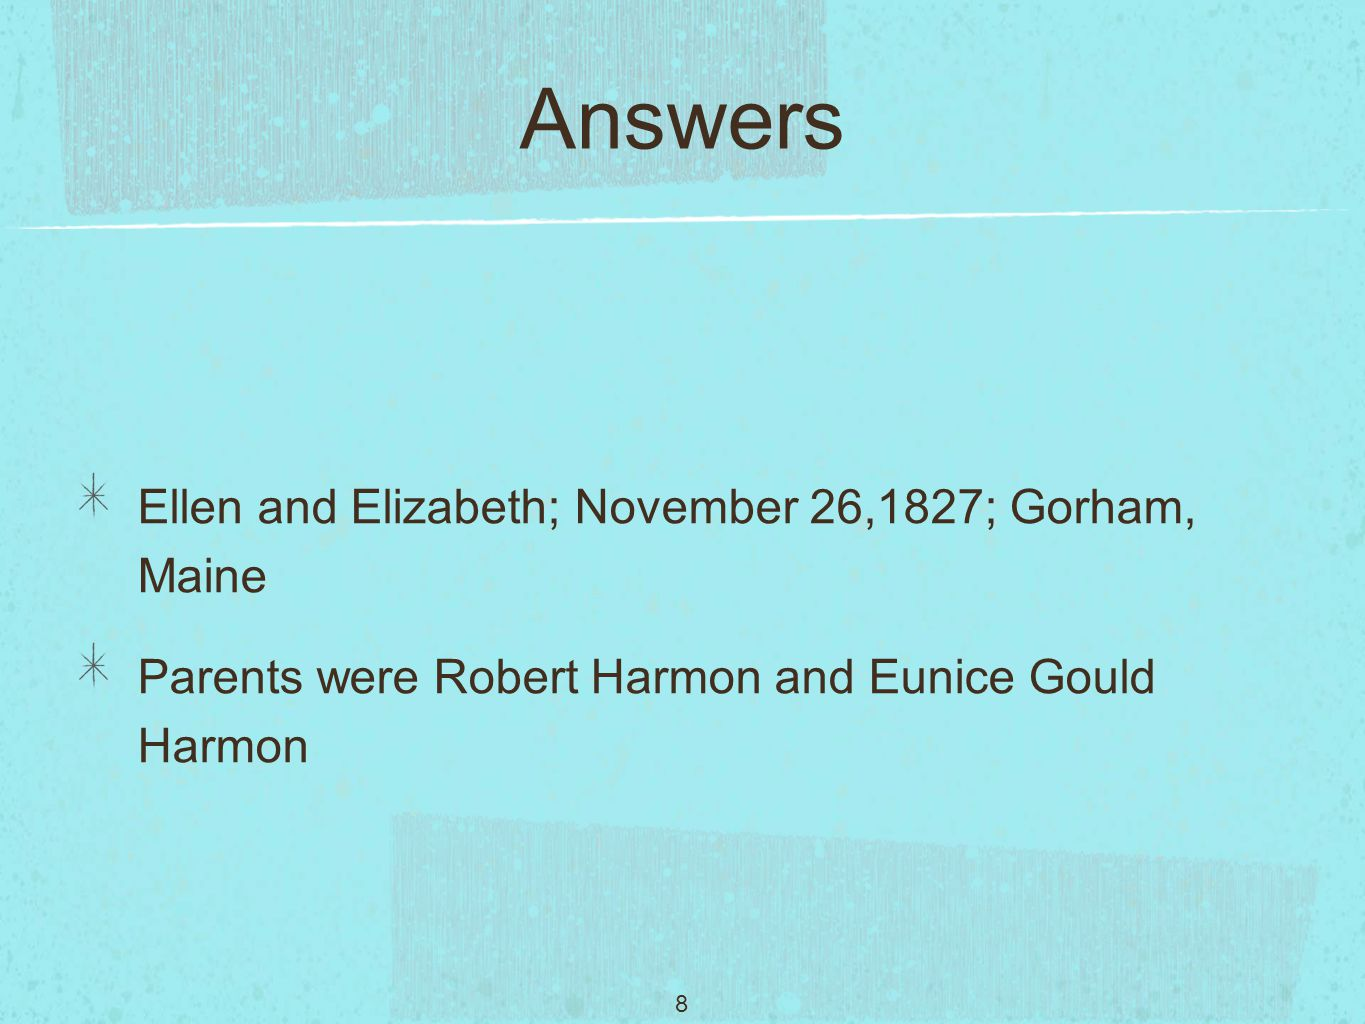 8 Answers Ellen and Elizabeth; November 26,1827; Gorham, Maine Parents were Robert Harmon and Eunice Gould Harmon